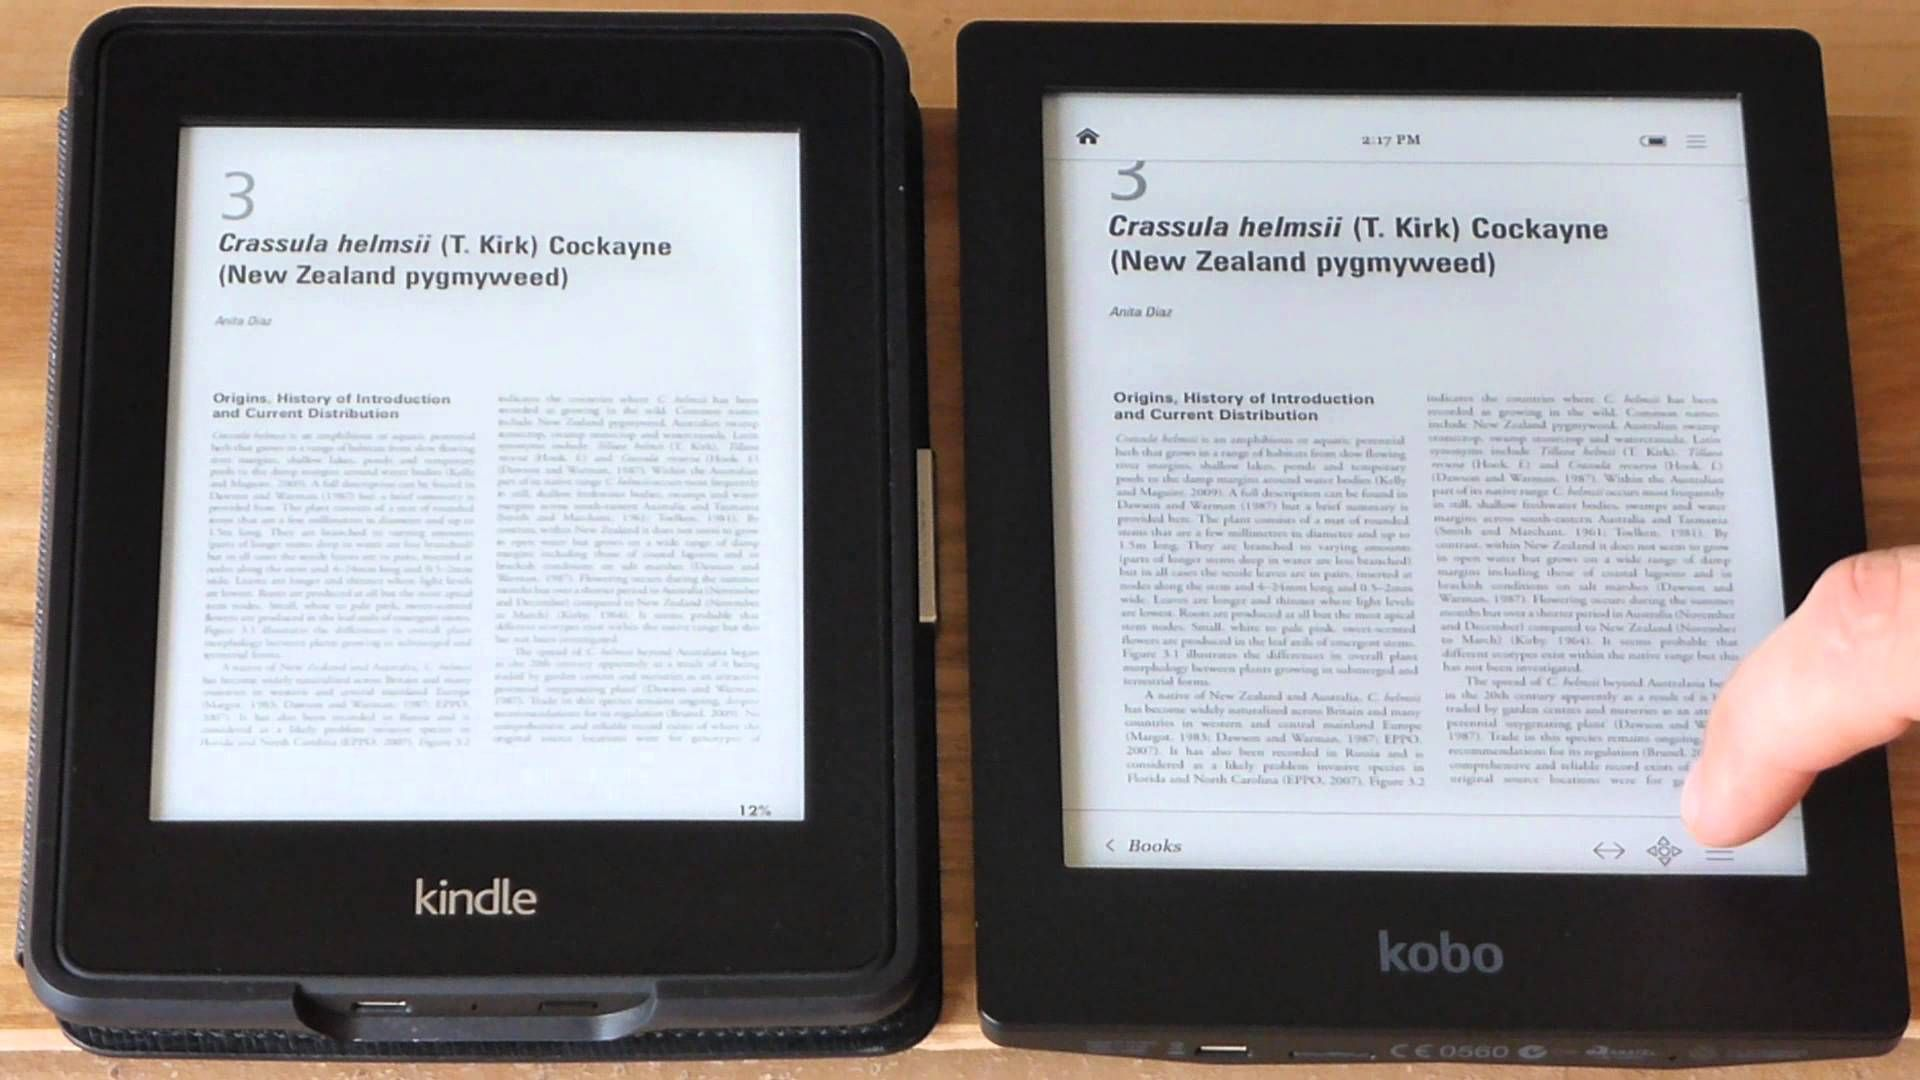 Kindle paperwhite vs kobo aura hd in pdf viewing computer kindle paperwhite vs kobo aura hd in pdf viewing fandeluxe Image collections